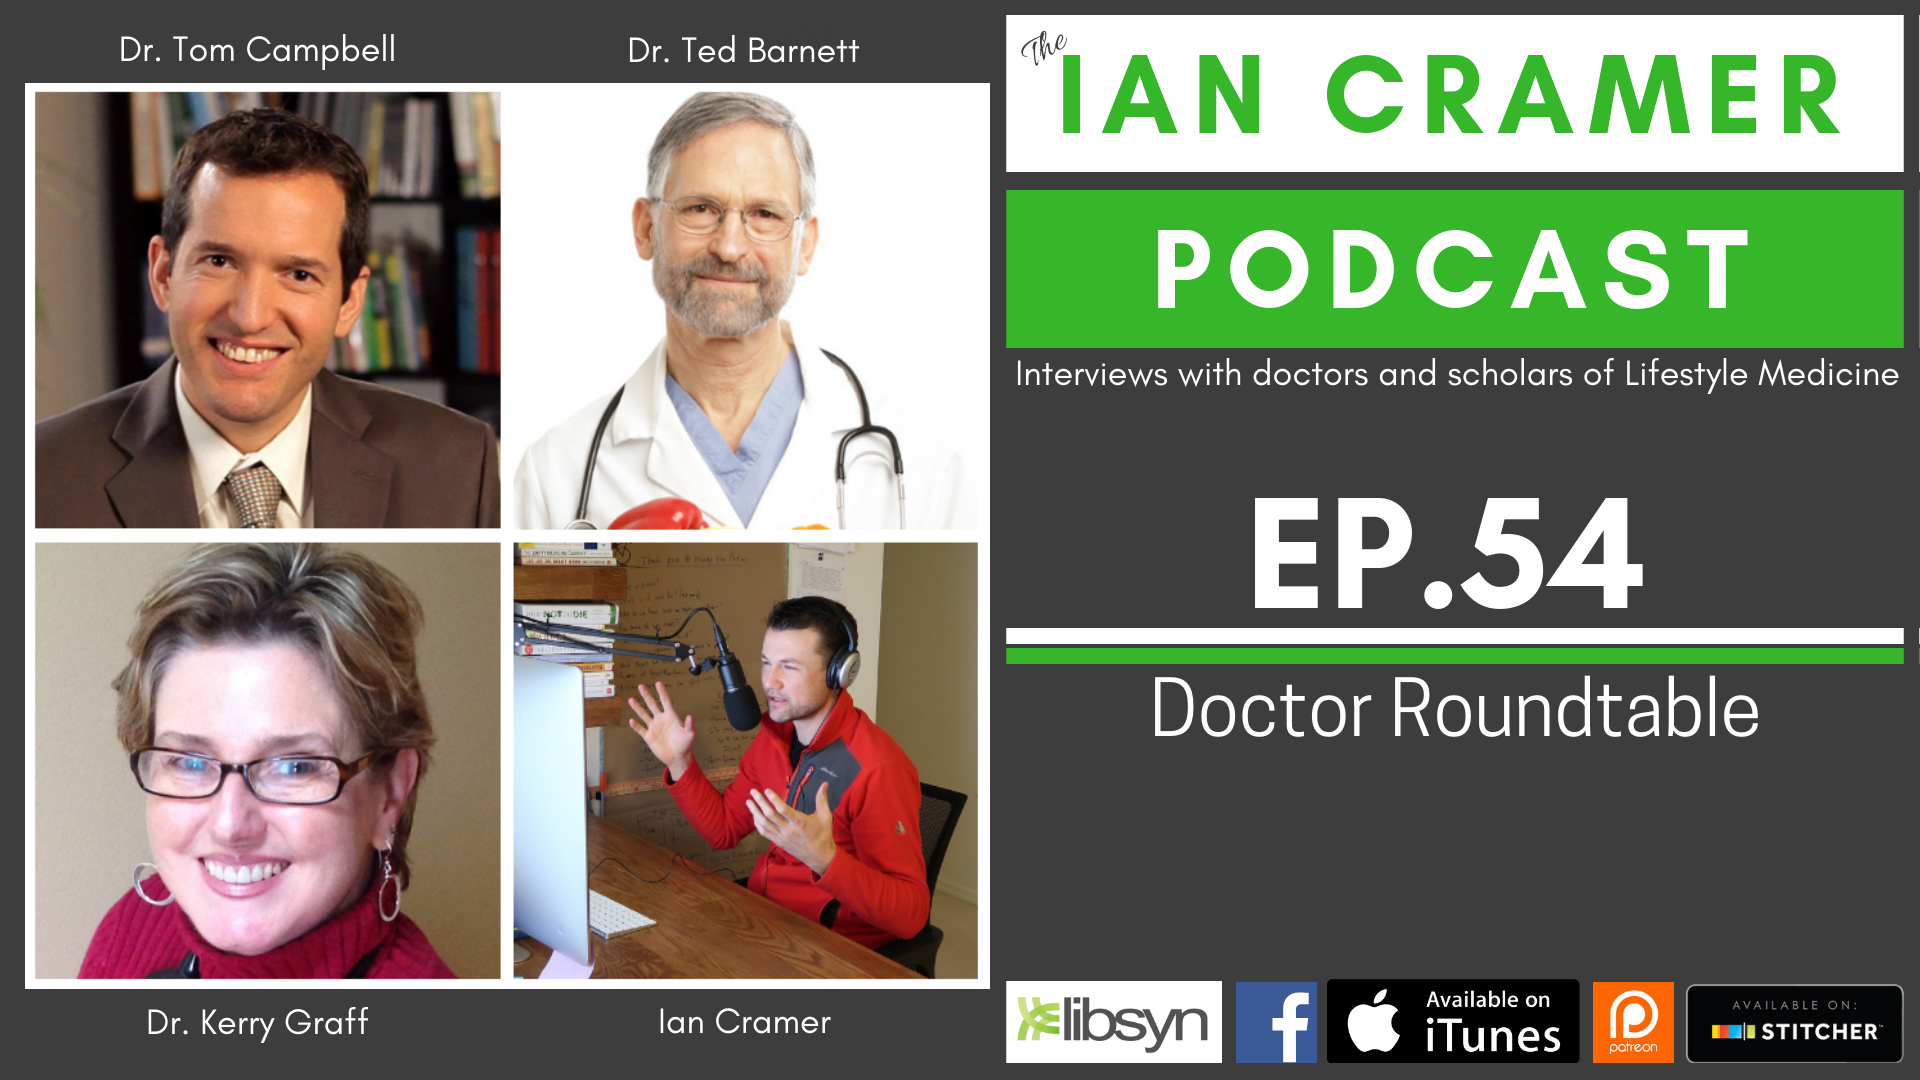 Round Table Podcast.The Ian Cramer Podcast Icp 54 Doctor Roundtable Kidney Disease